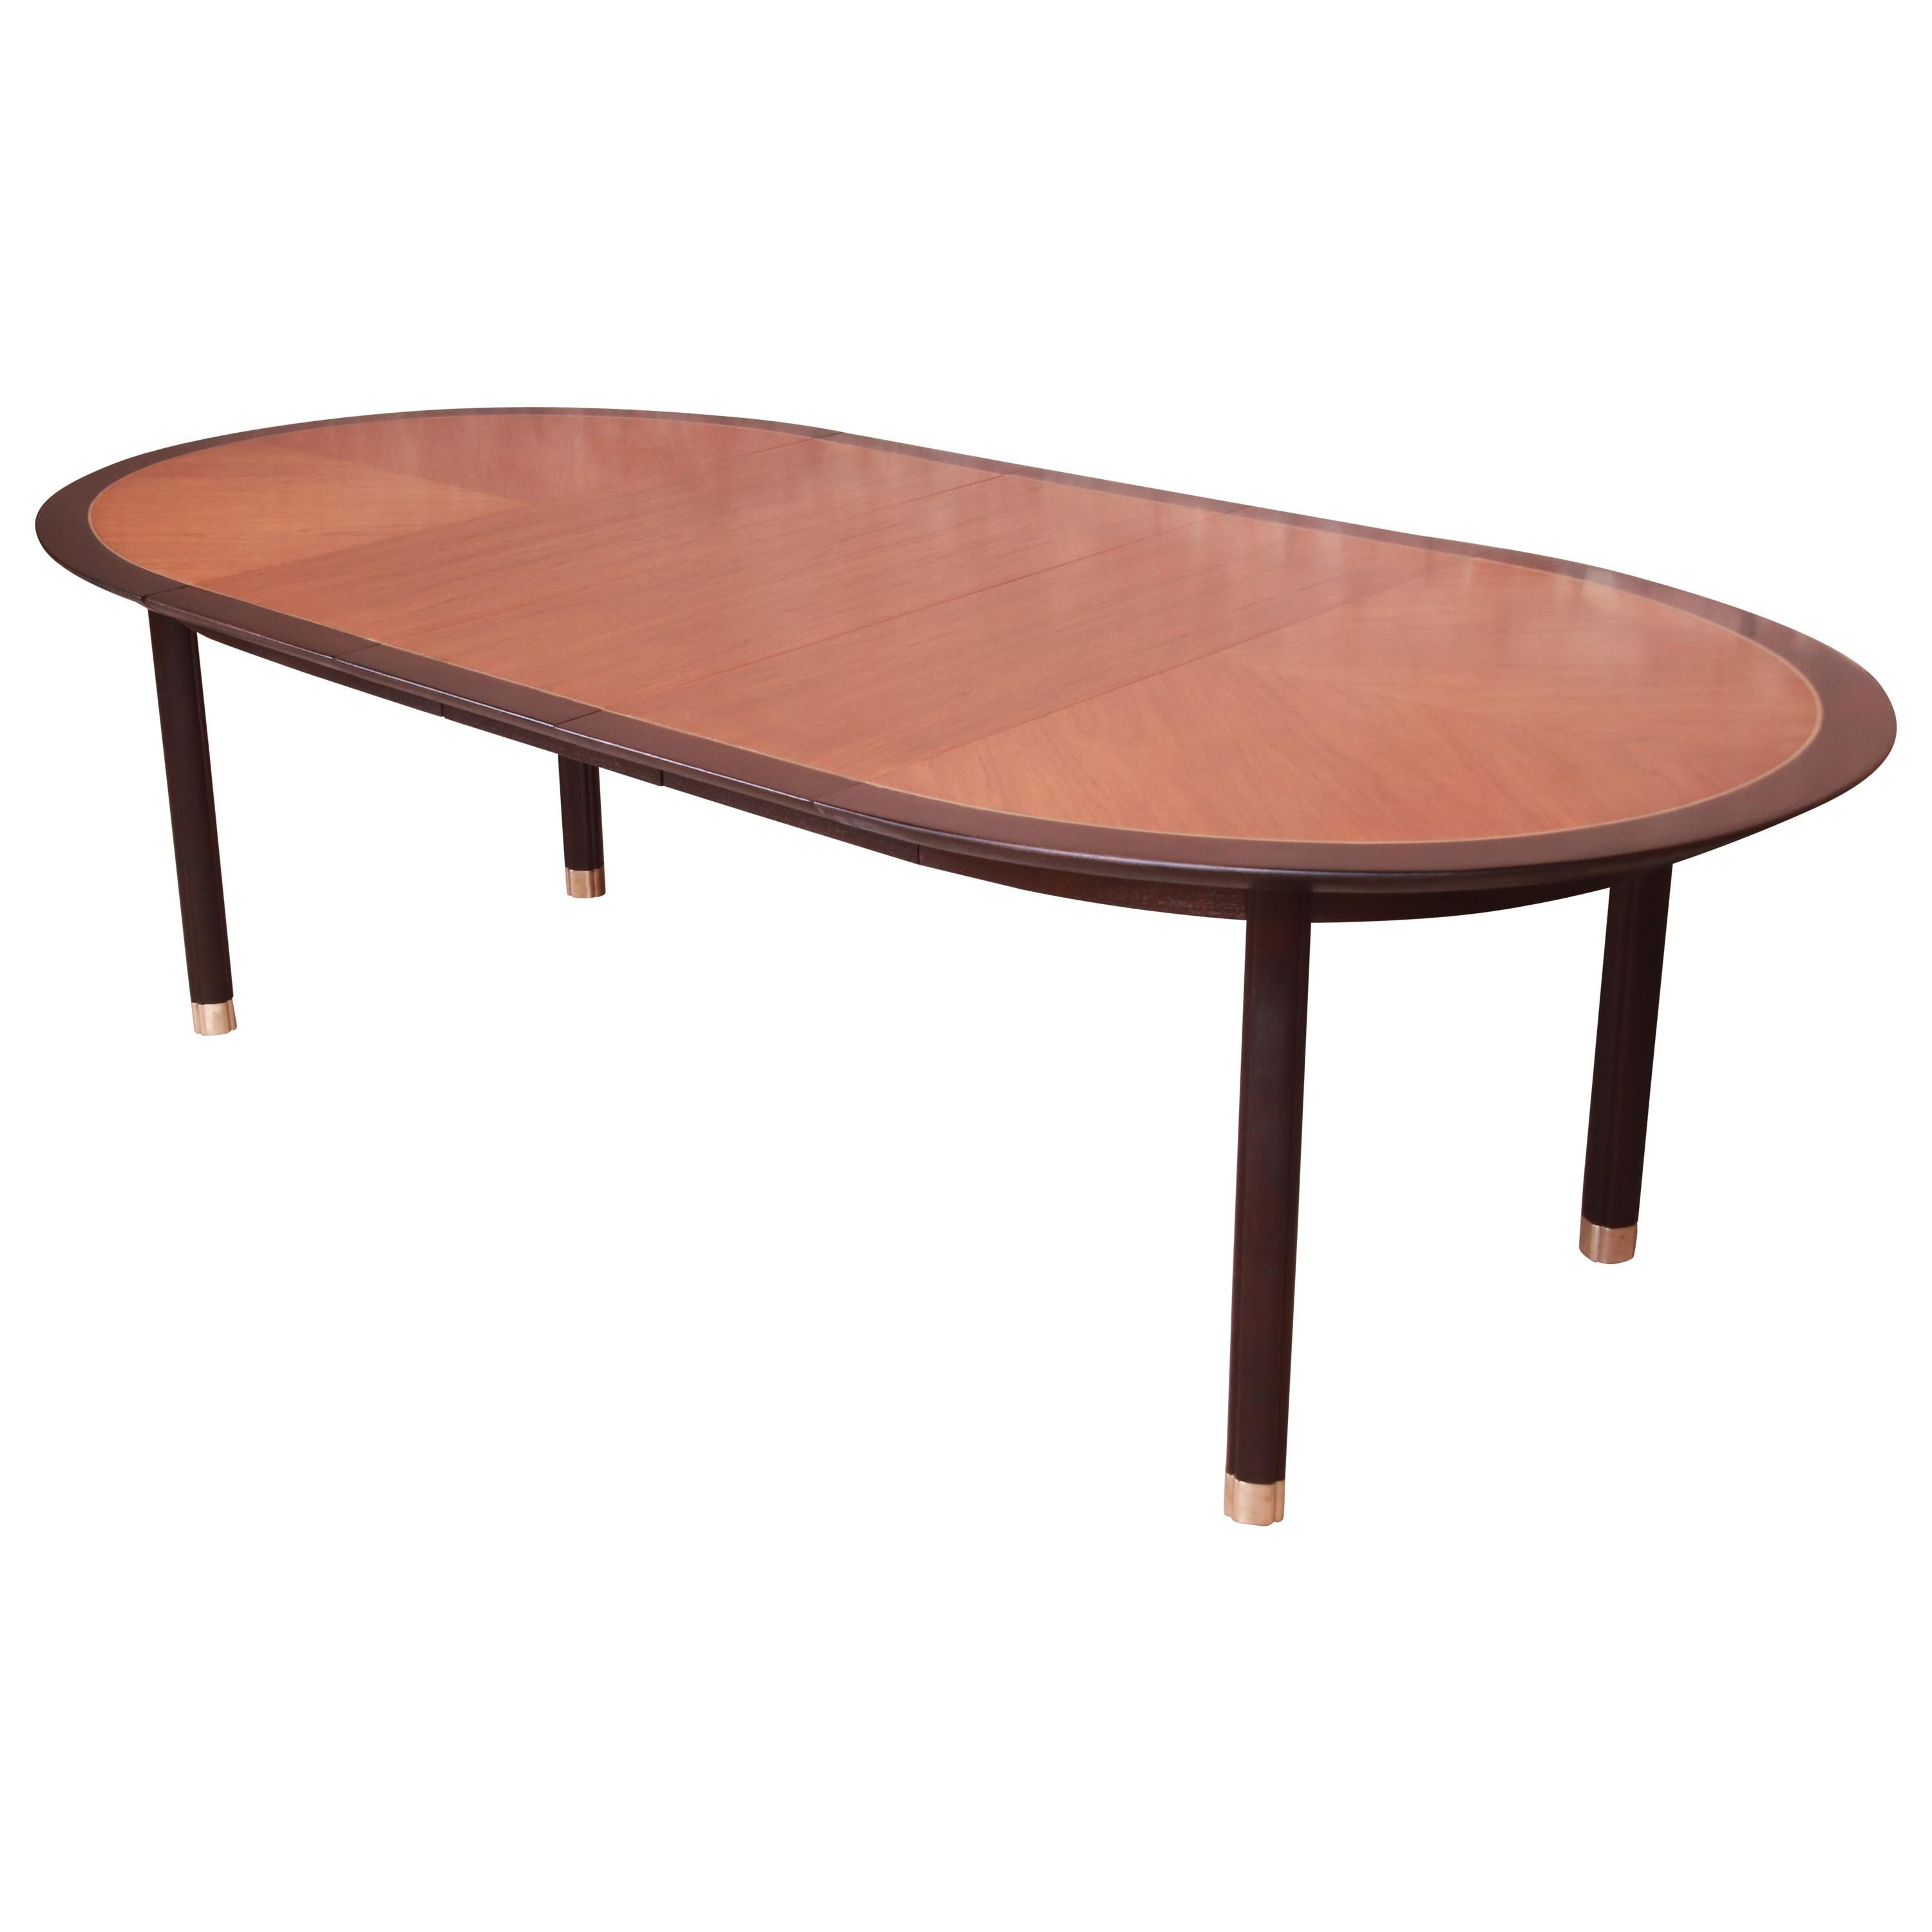 Michael Taylor for Baker Cherry Wood and Black Lacquer Extension Dining Table